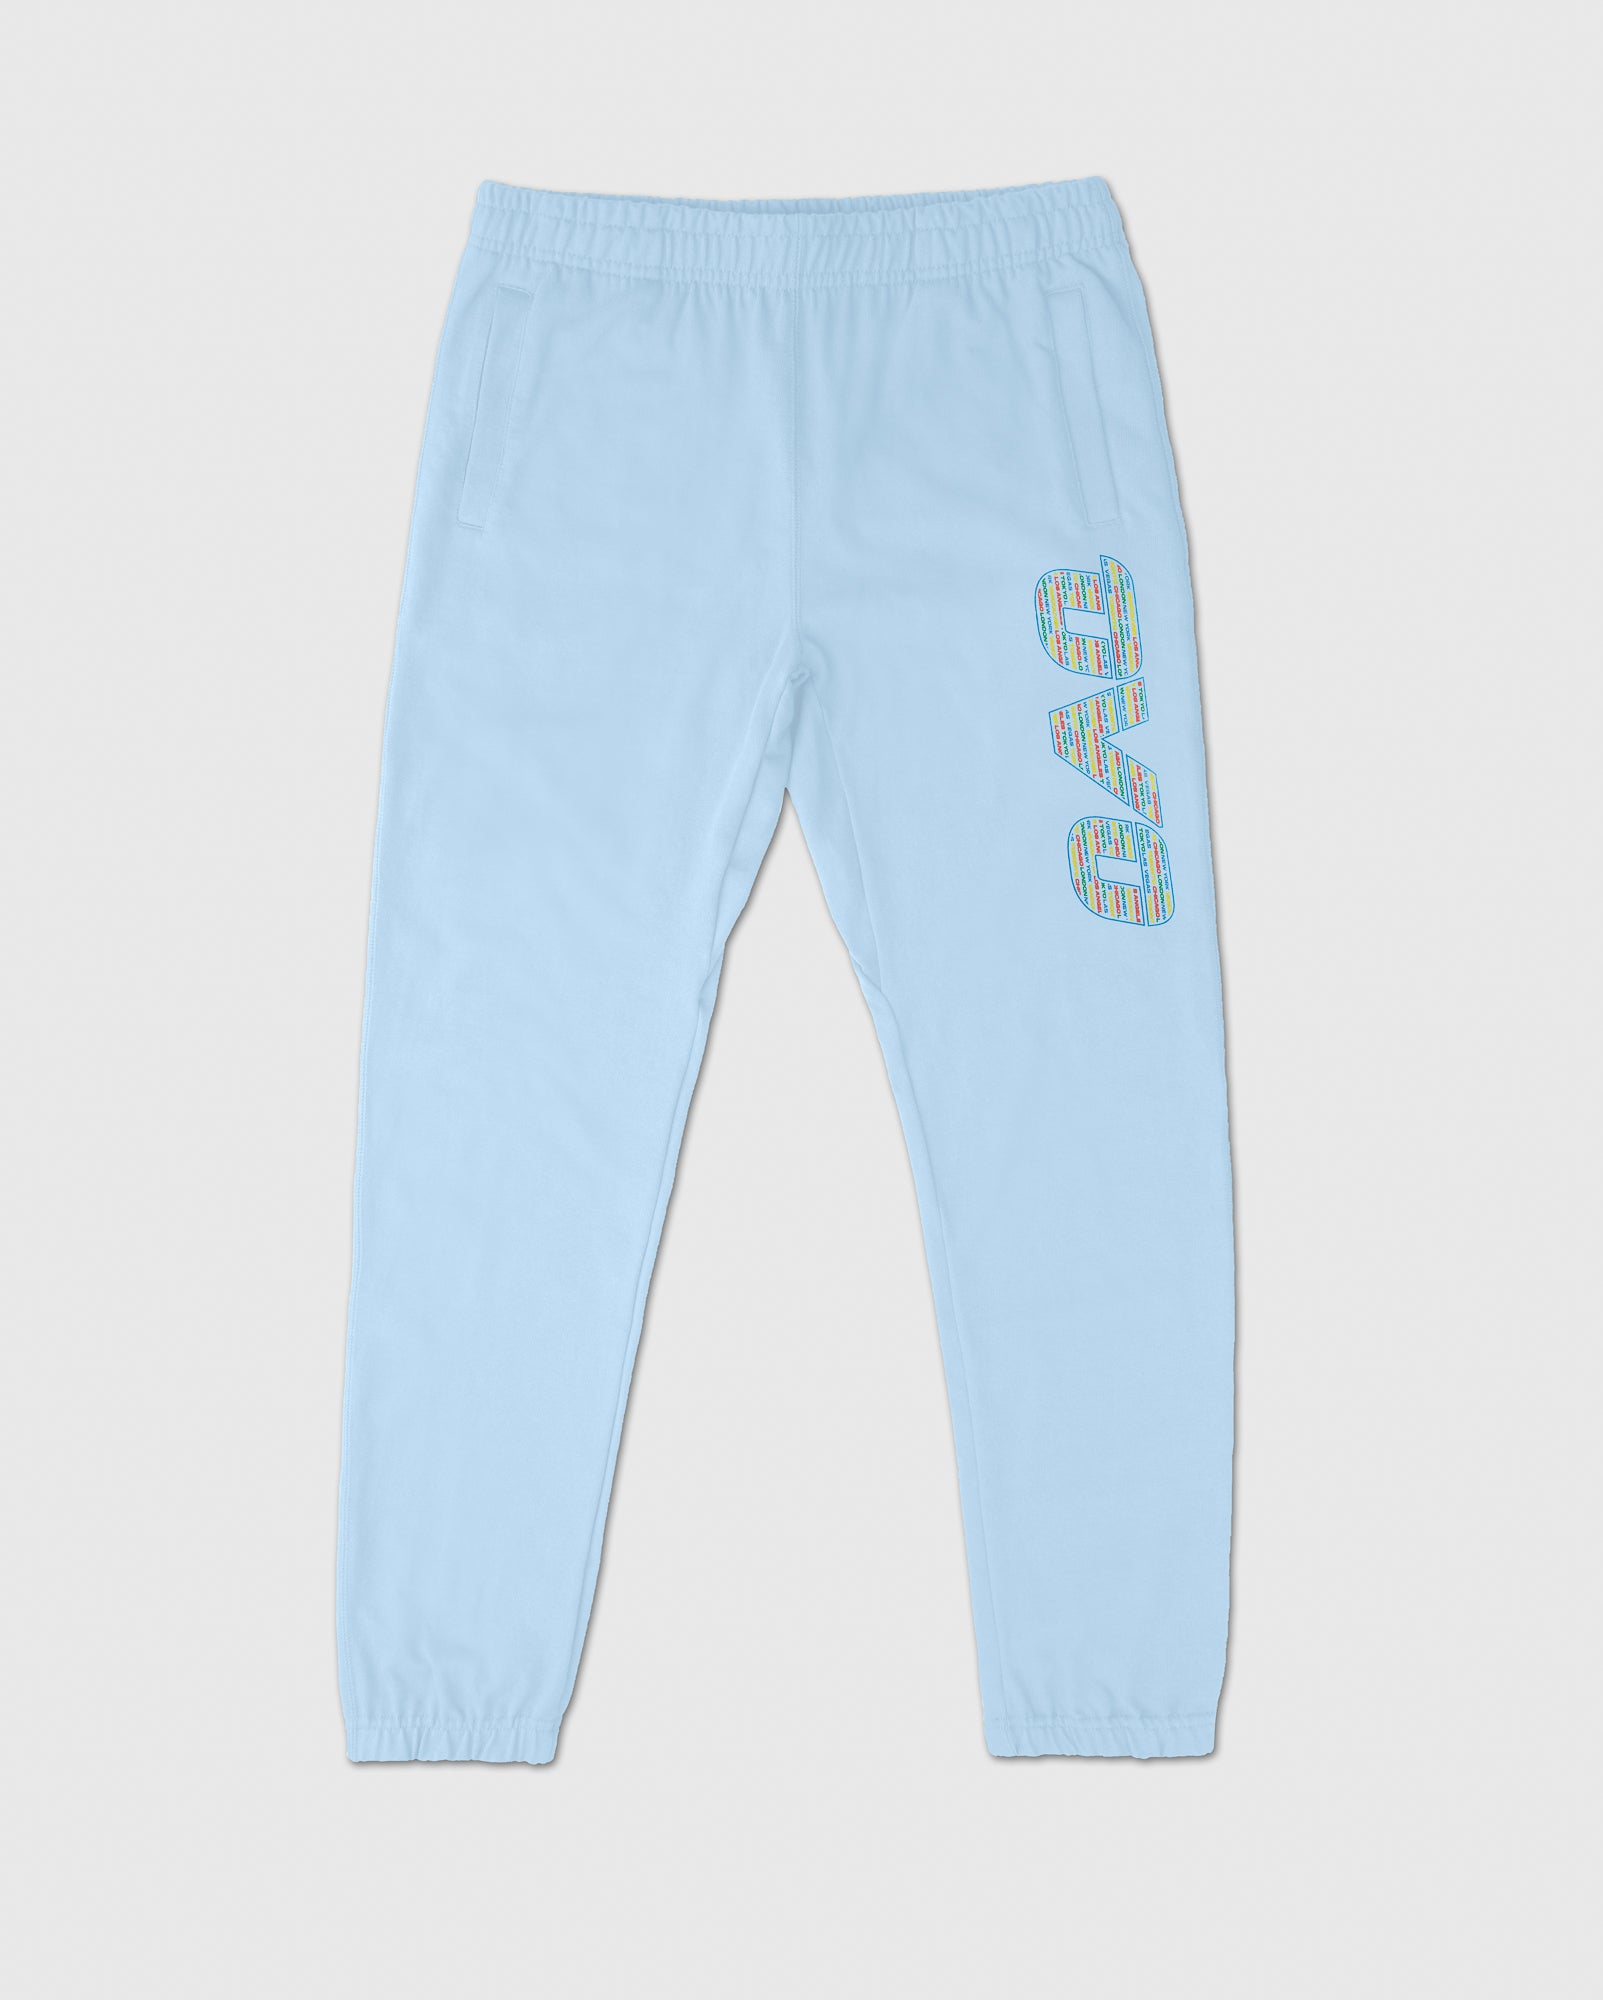 CITY RUNNER SWEATPANT - SKY BLUE IMAGE #1